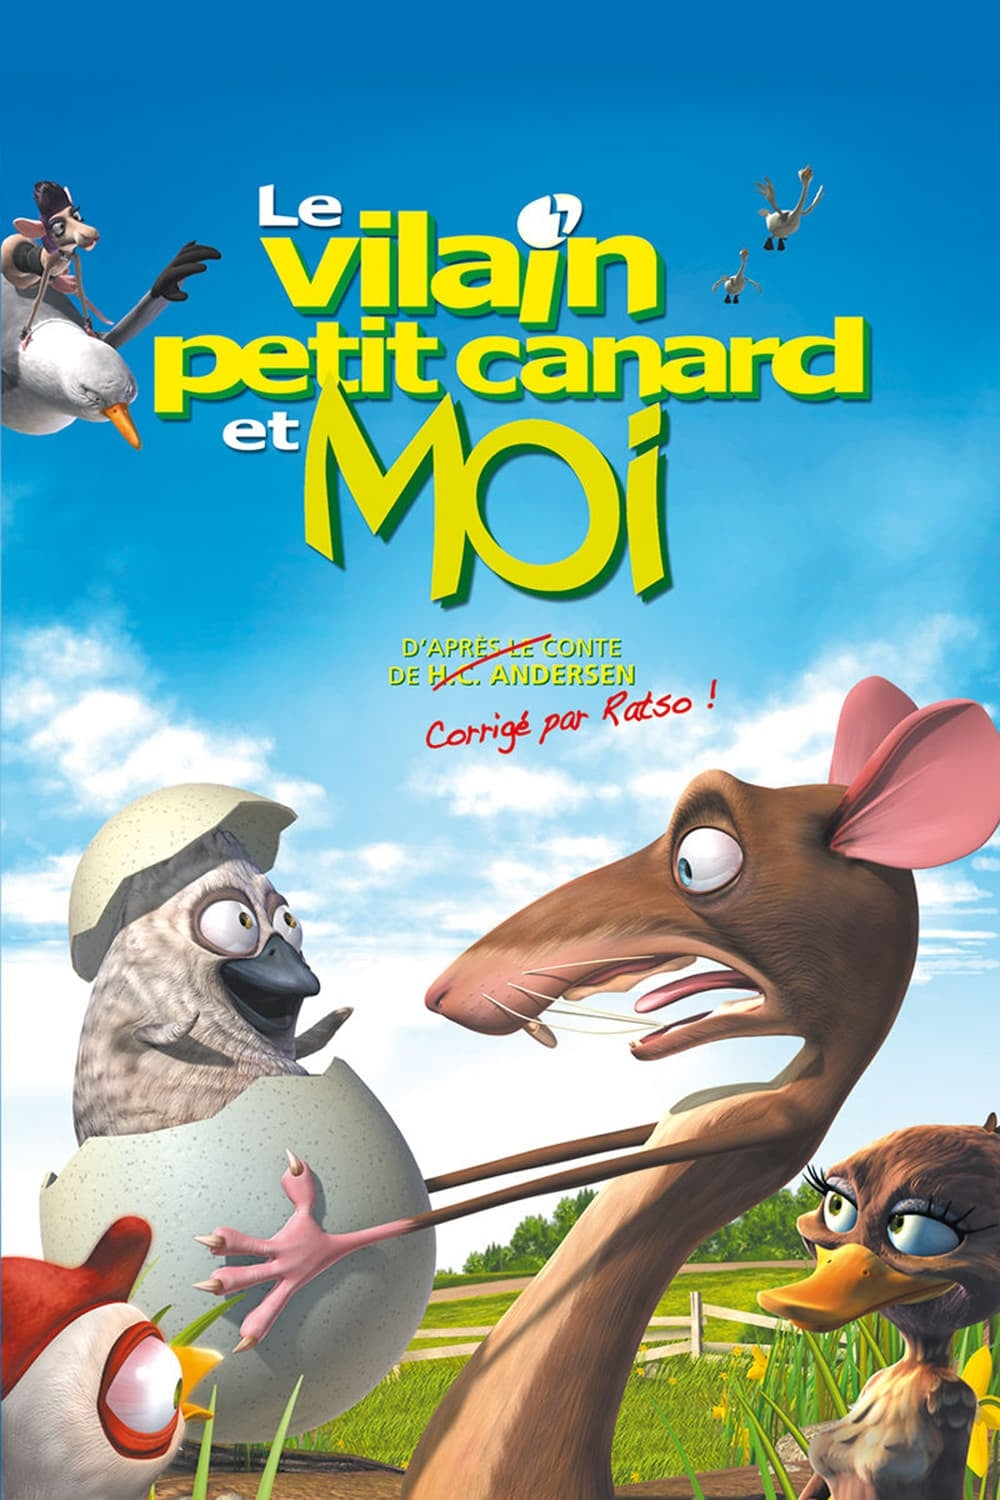 Le-Vilain-Petit-Canard-Et-Moi-The-Ugly-Duckling-And-Me-2006-